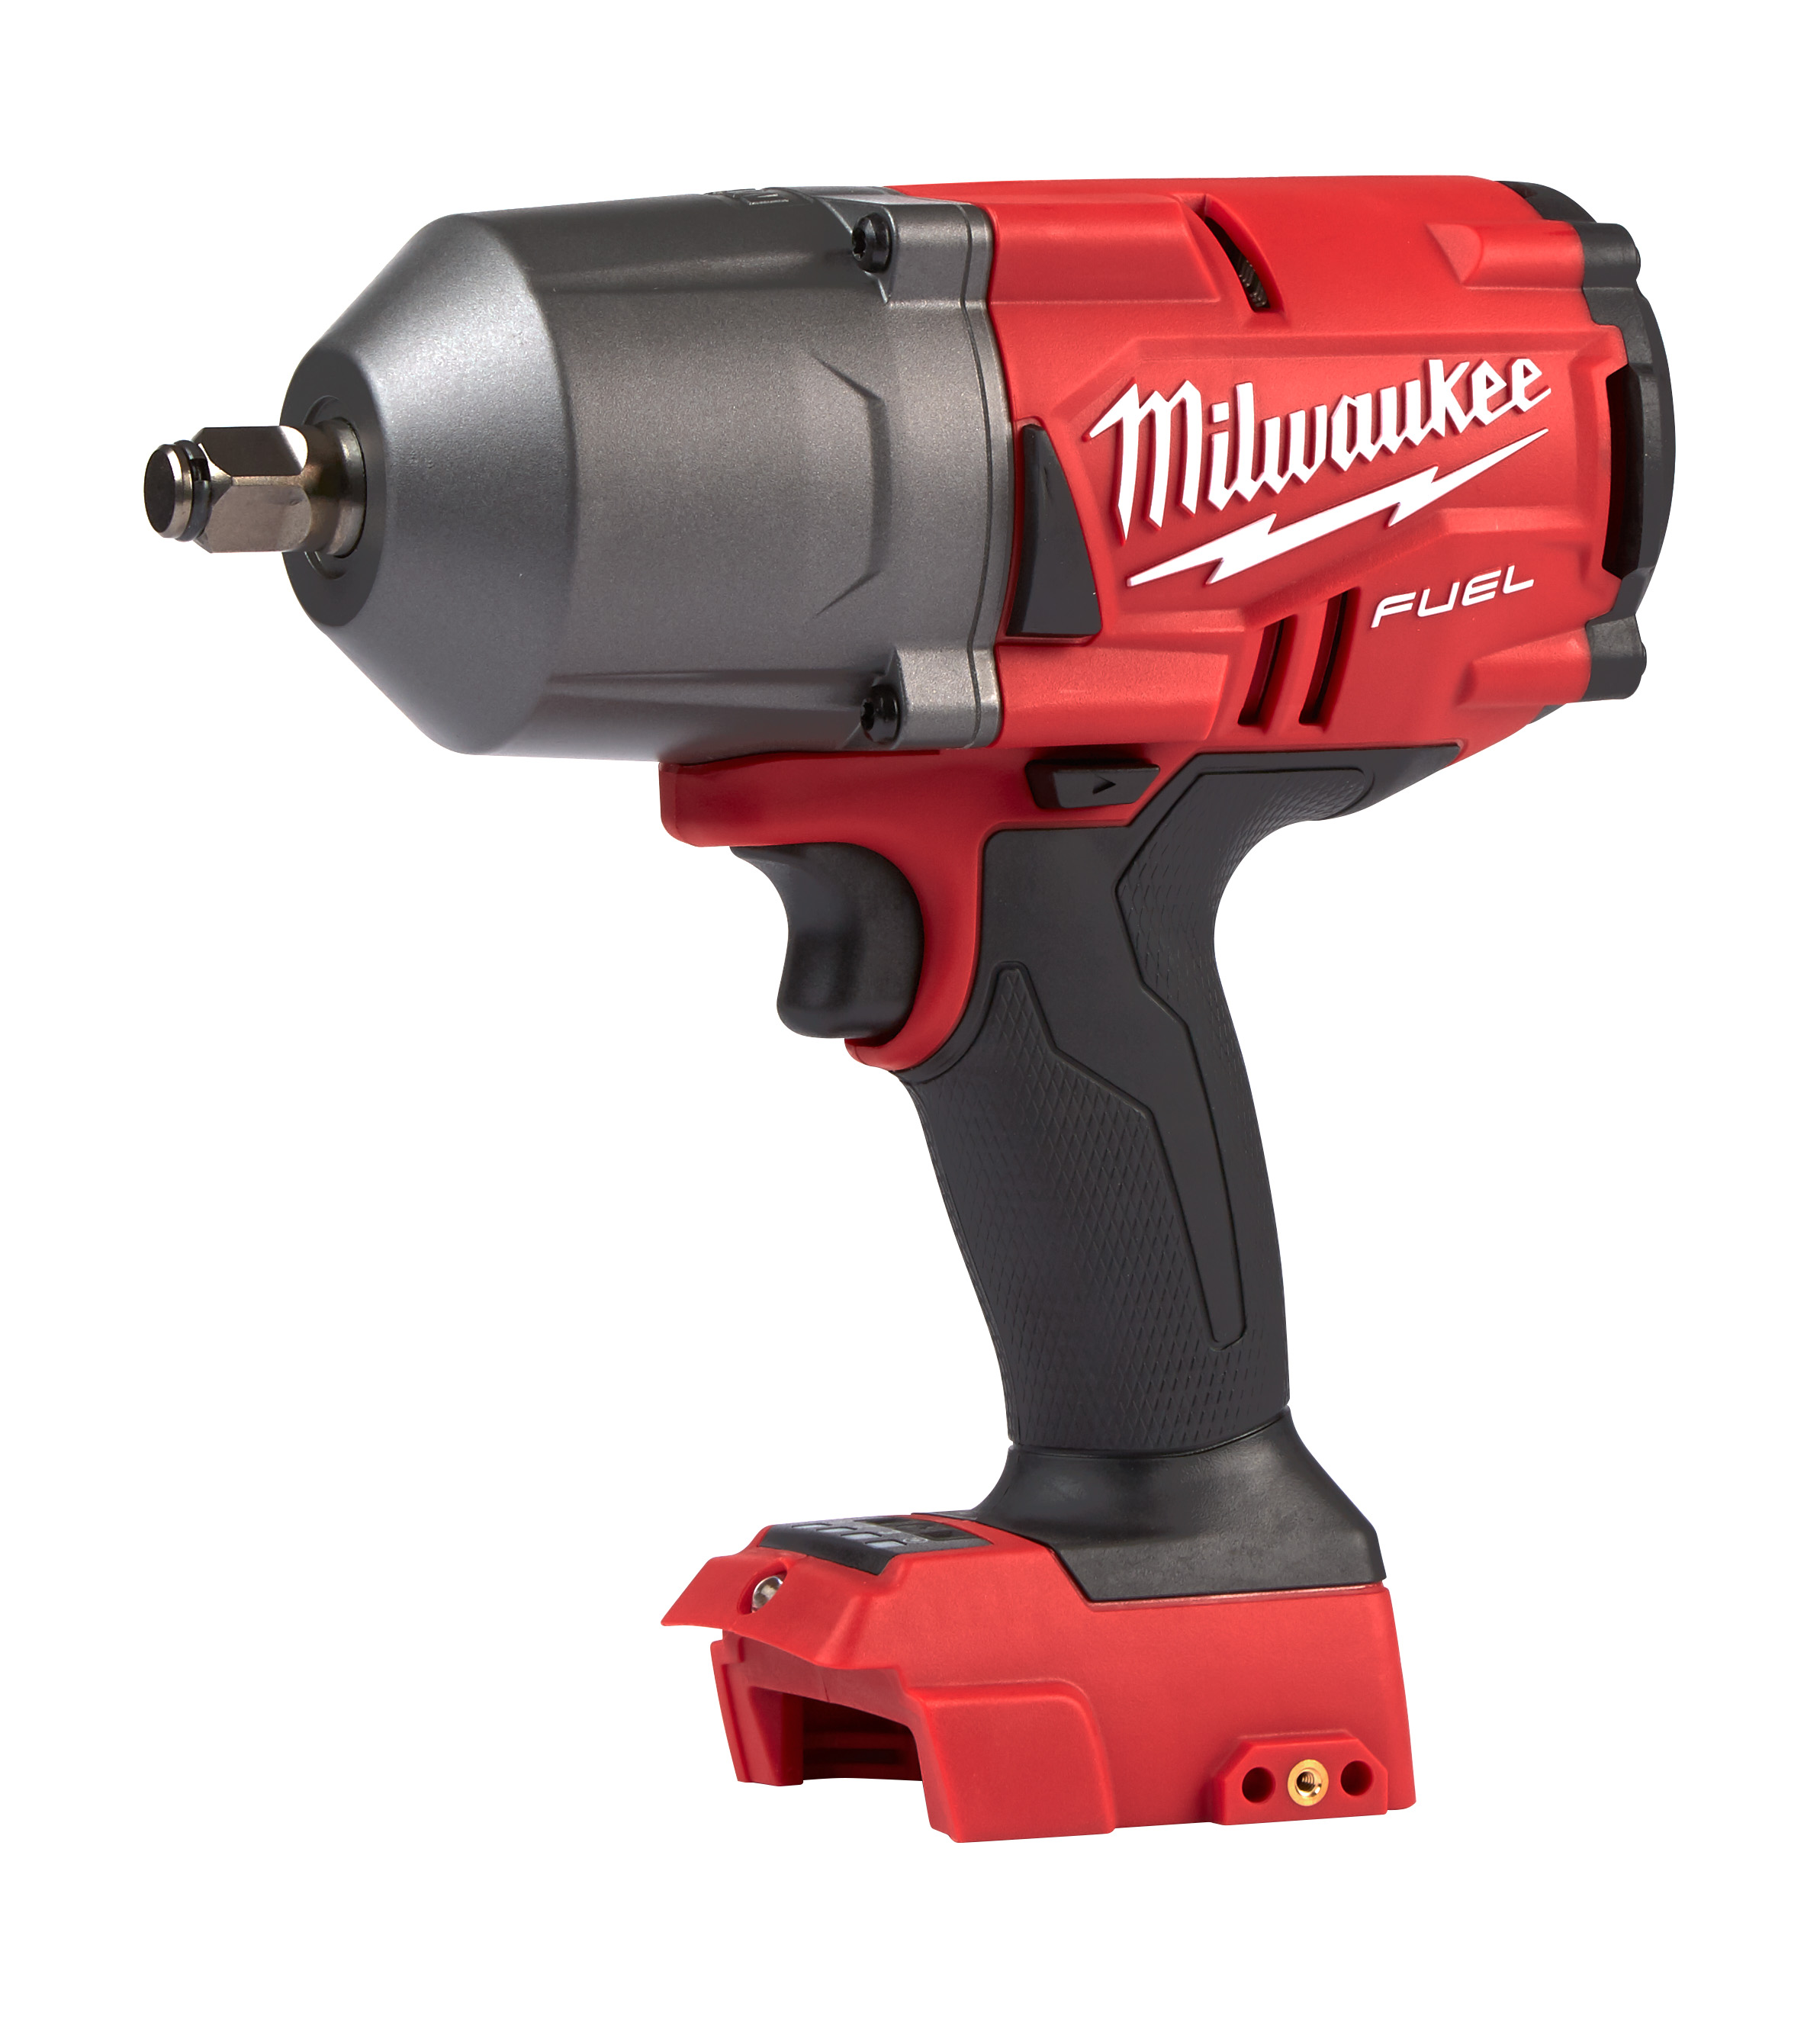 Milwaukee® M18™ FUEL™ 2767-20 M18™ FUEL™ Cordless Impact Wrench With Friction Ring, 1/2 in, 1000 ft-lb Torque, 18 VDC, 8.39 in OAL